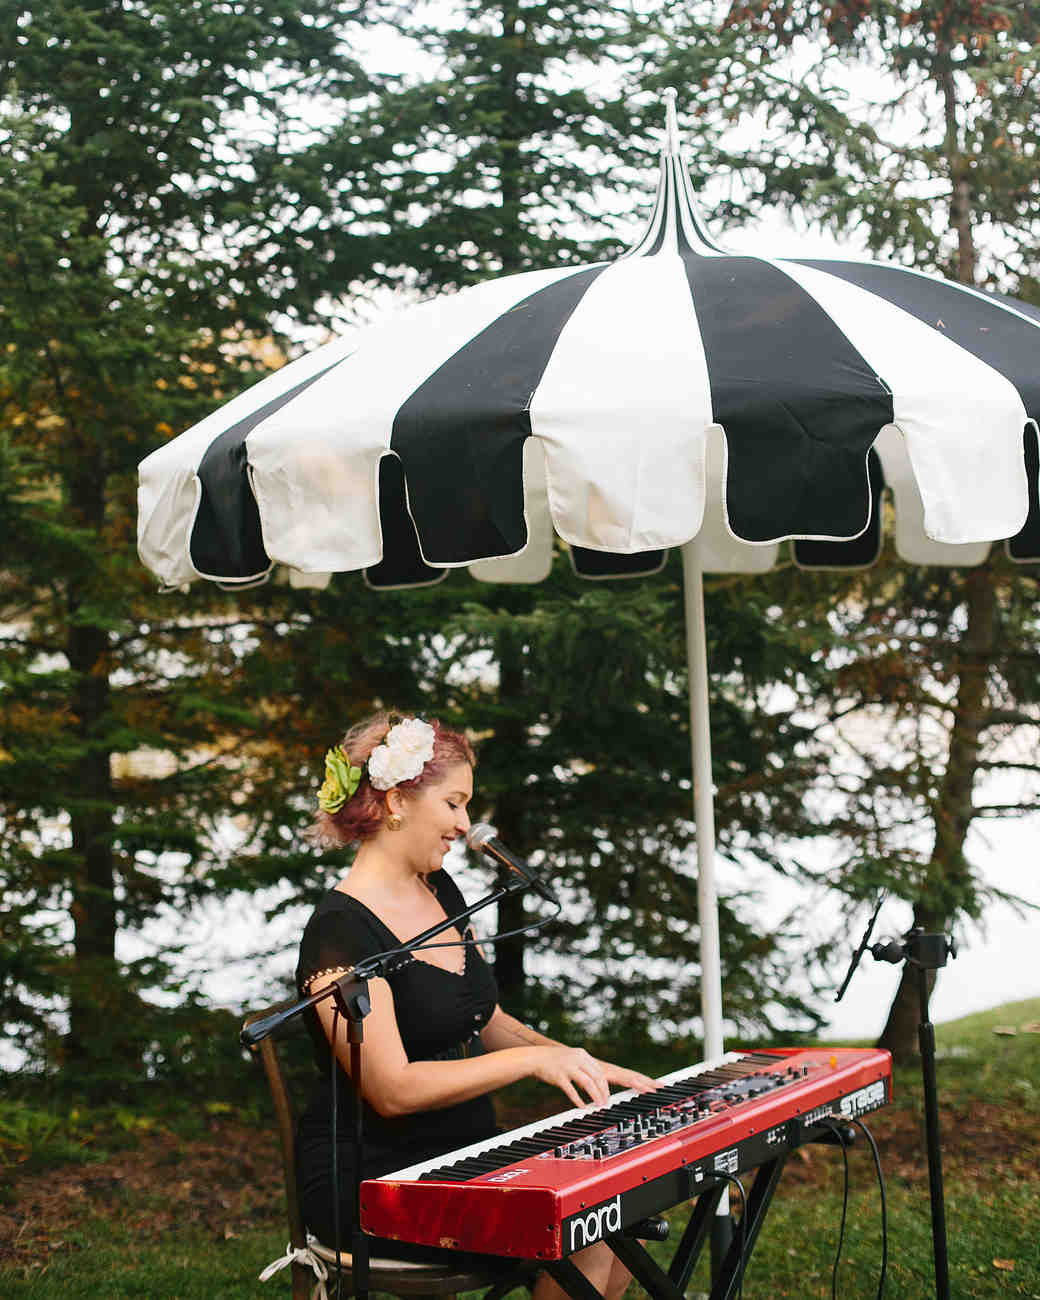 tory sean wedding lake placid new york keyboardist